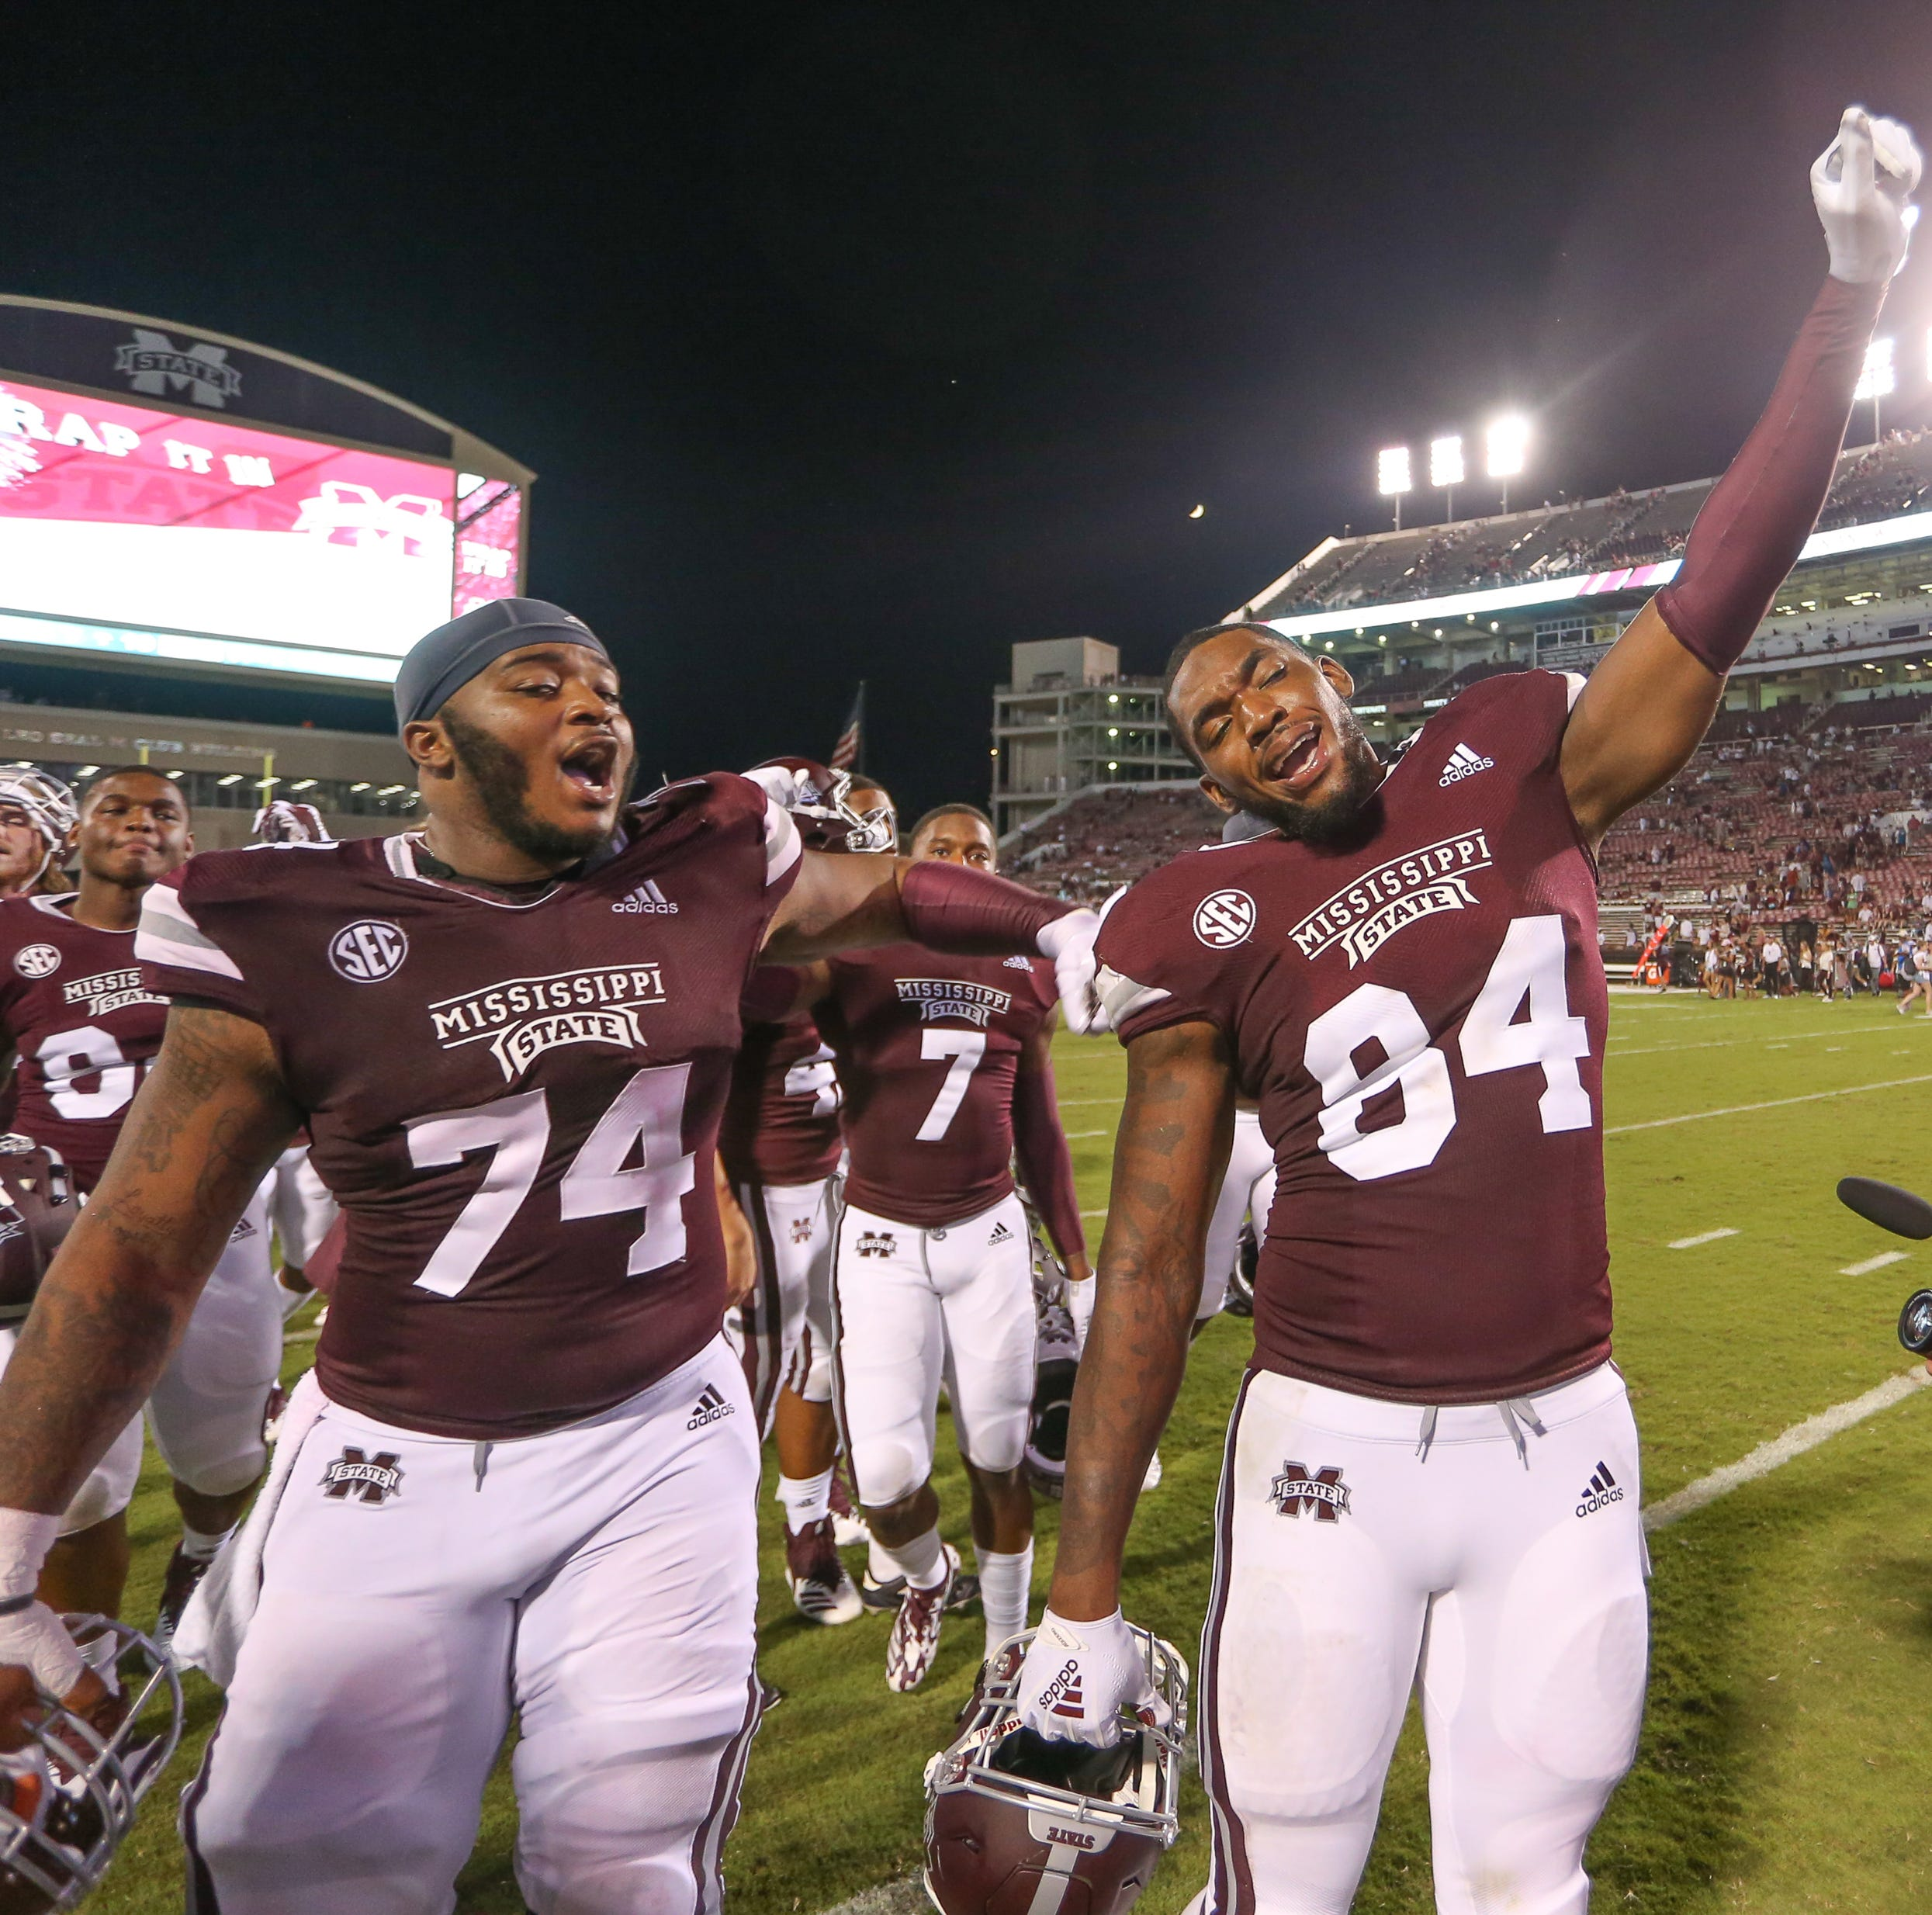 Mississippi State's Elgton Jenkins is the 'brain' behind Bulldogs' offense